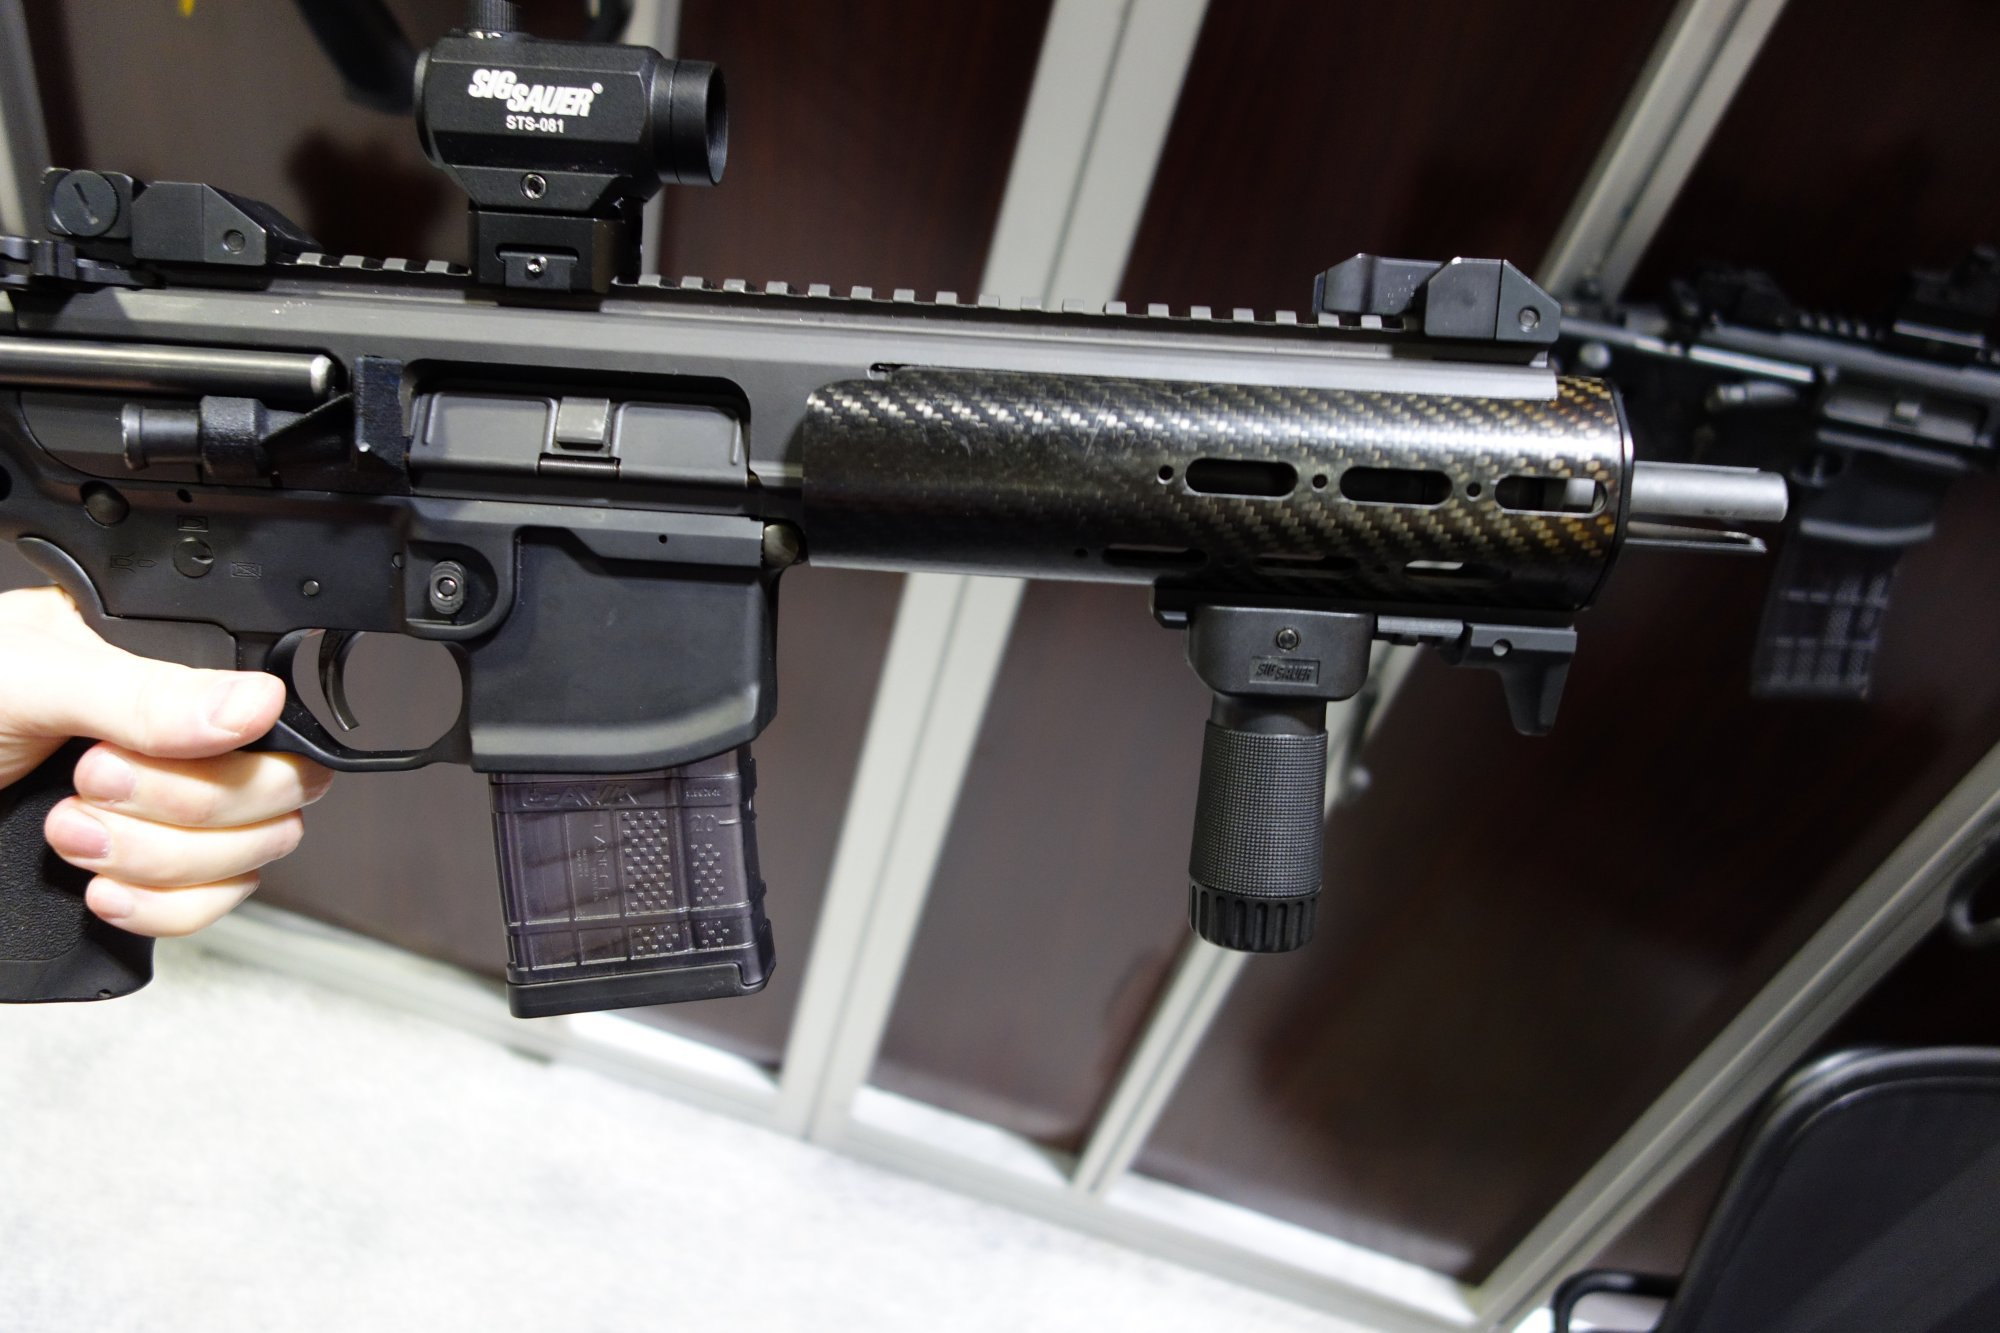 SIG Sauer MCX (Mission-Configurable Weapon System) Dual-Piston/Op-Rod 5.56x45mm NATO and 7.62x39mm Russian AR-15 Short Barreled Rifle (SBR)/PDW/Carbine with Integral Suppressor Introduced at NDIA SOFIC 2013! (Photos!)